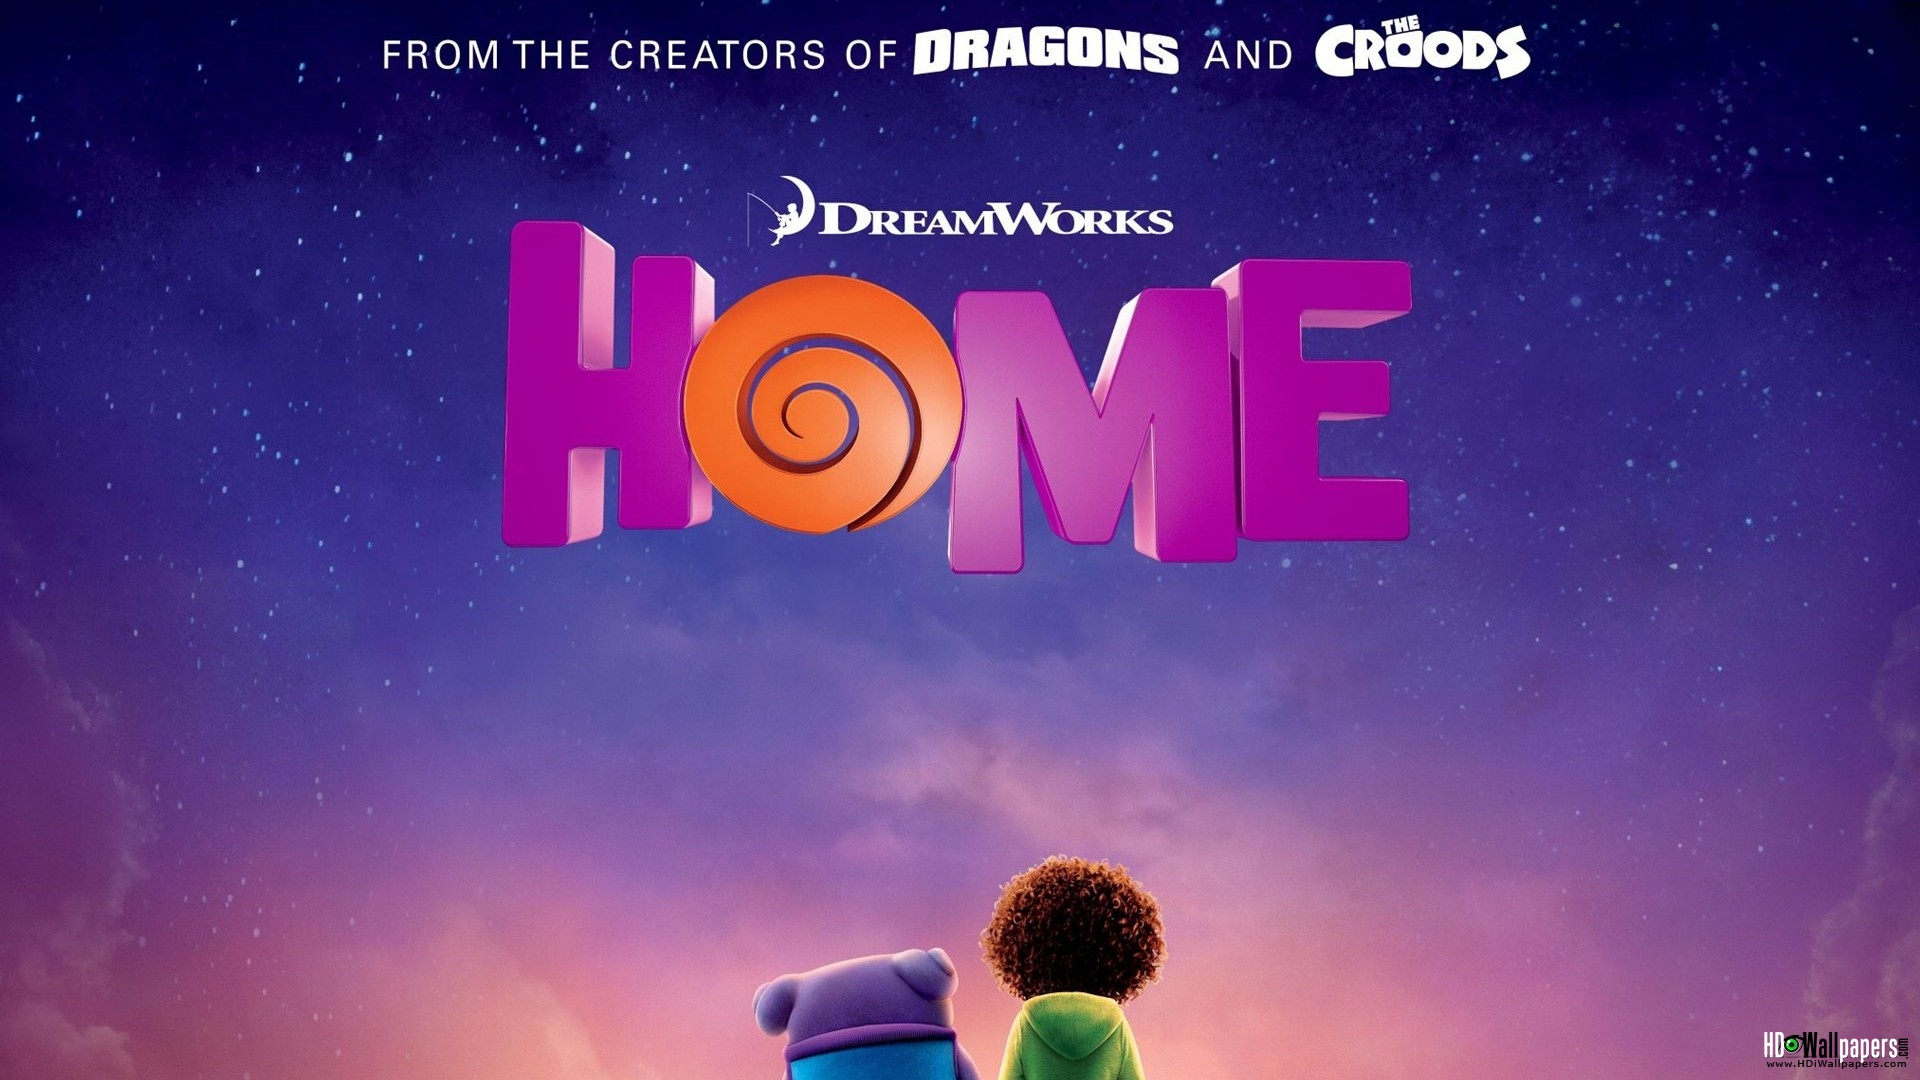 HOME (PG) Released by 20th Century Fox/DreamWorks Animation Review by Adam Mast